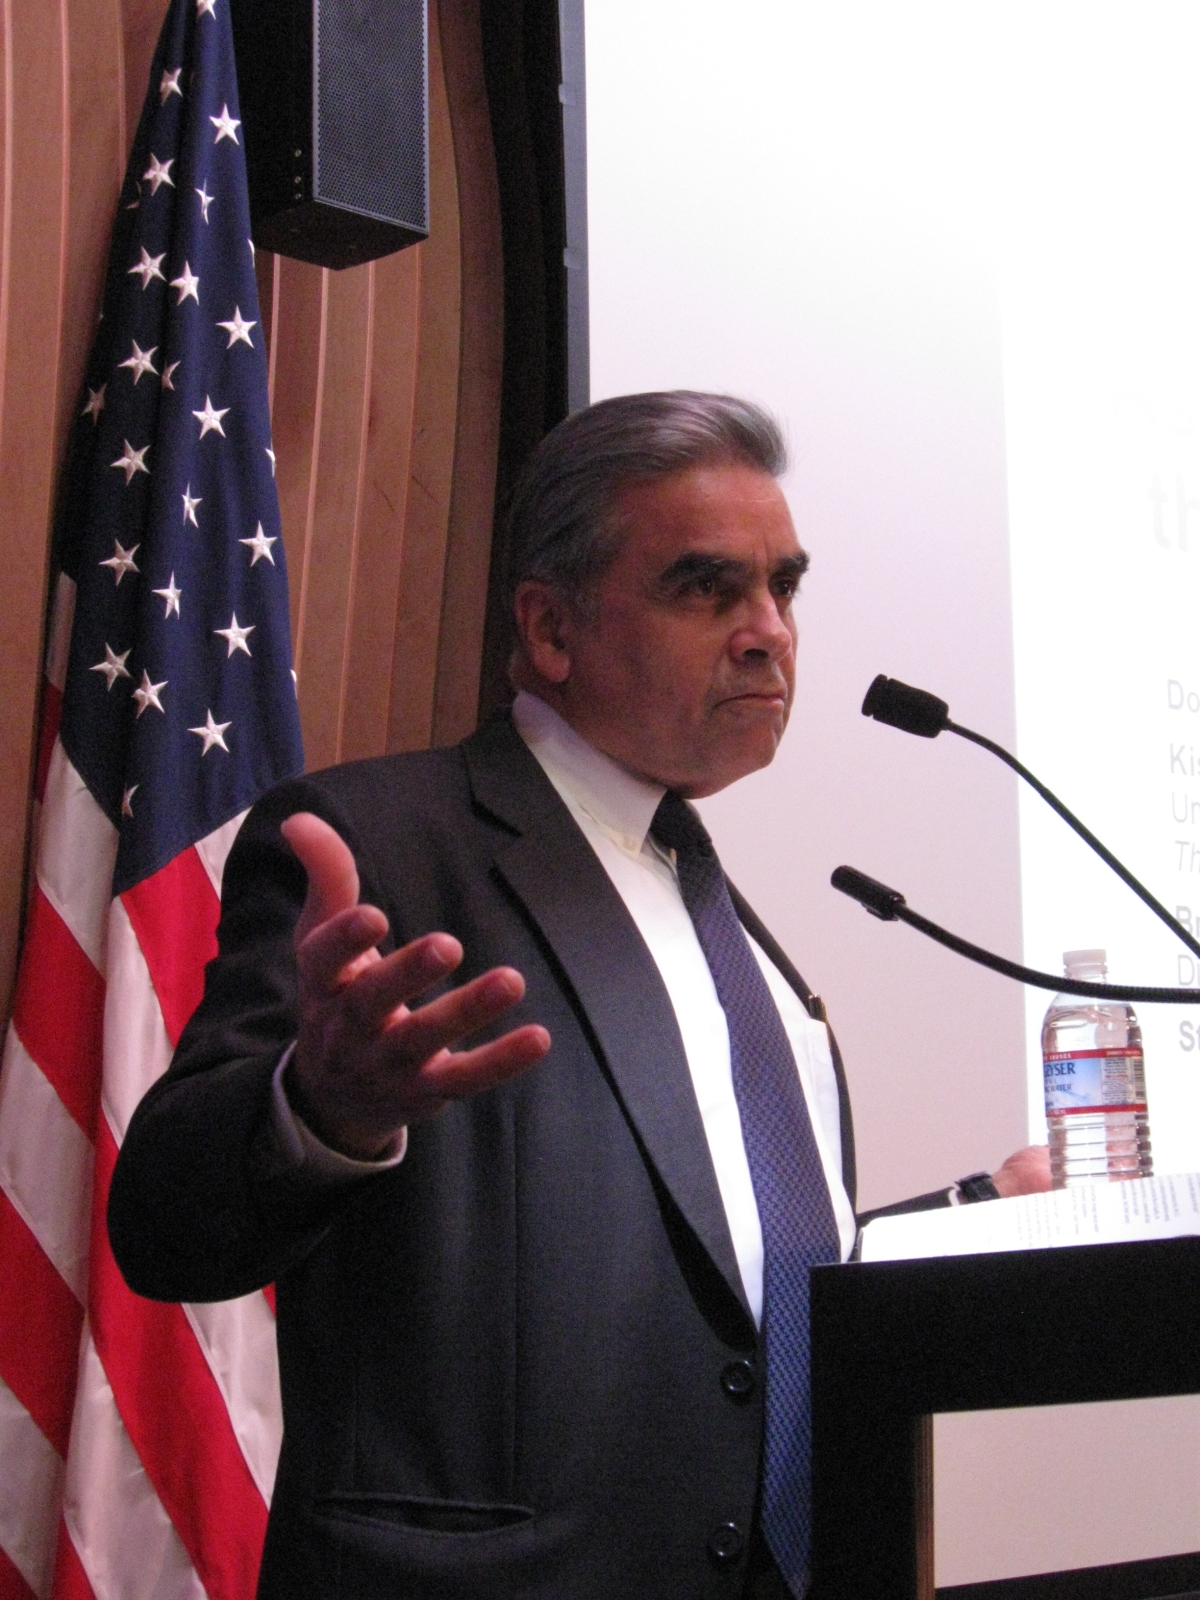 Kishore Mahbubani talks about his new book, The Great Convergence: Asia, the West, and the Logic of One World, at an ASNC event. (Asia Society)